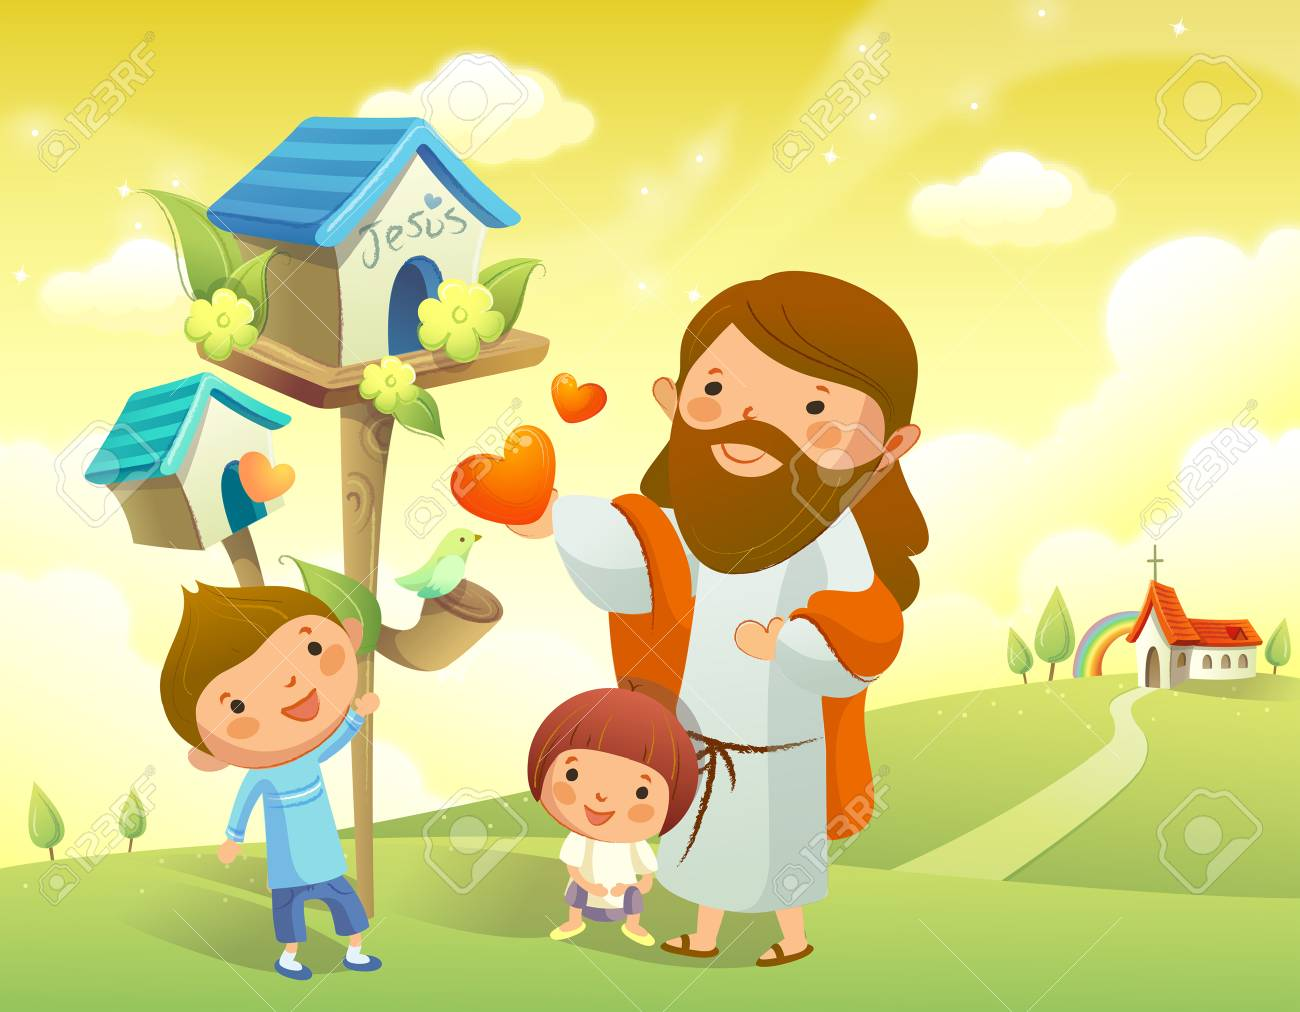 hight resolution of jesus christ and two children standing near a birdhouse stock vector 78587791